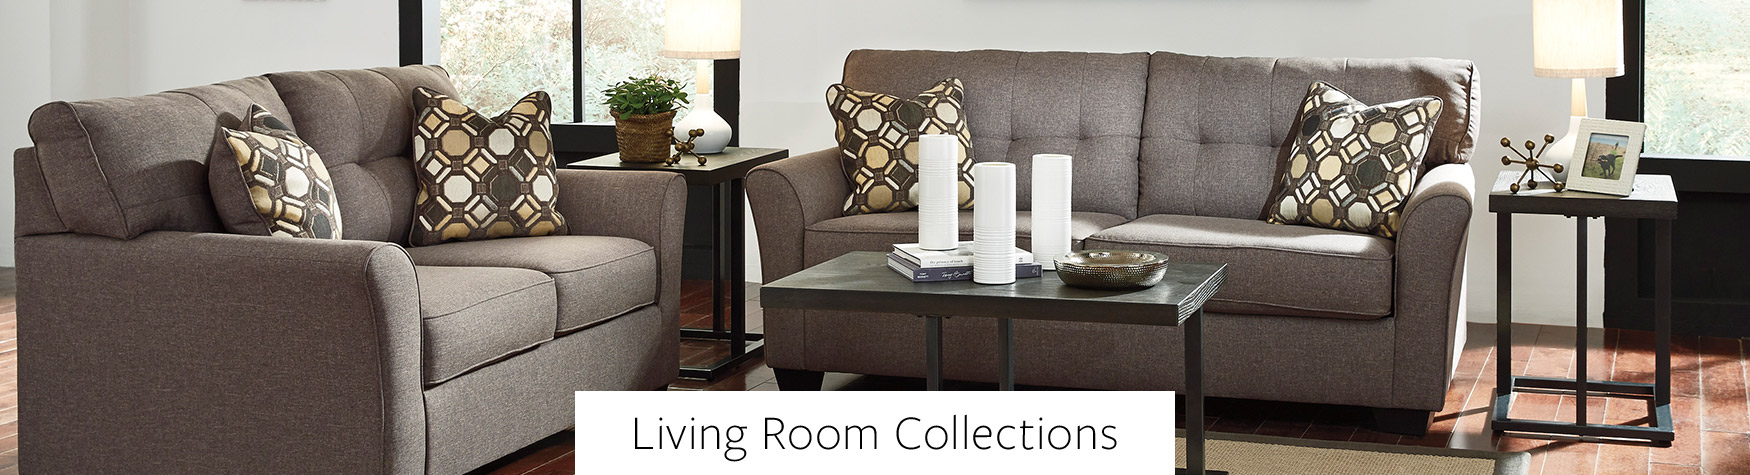 living-room-collections-banner.jpg